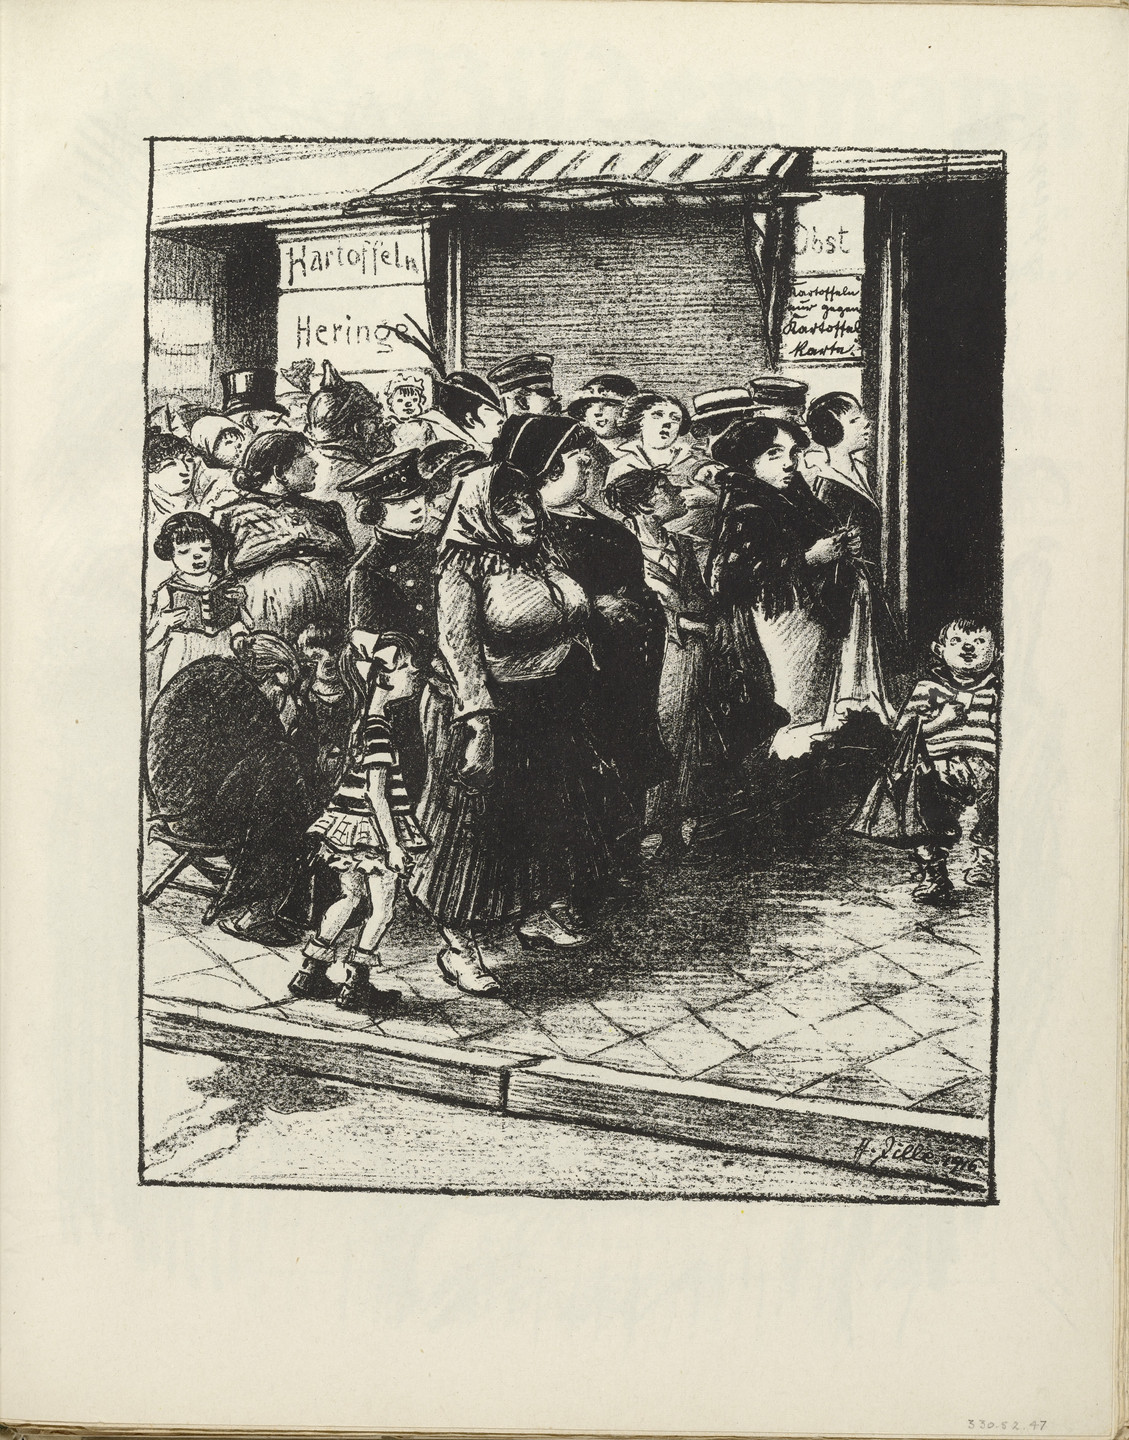 Heinrich Zille. Standing in Line for Potatoes (Kartoffelstehen) (plate, folio 25) from the periodical Der Bildermann, vol. 1, no. 12 (September 1916). 1916